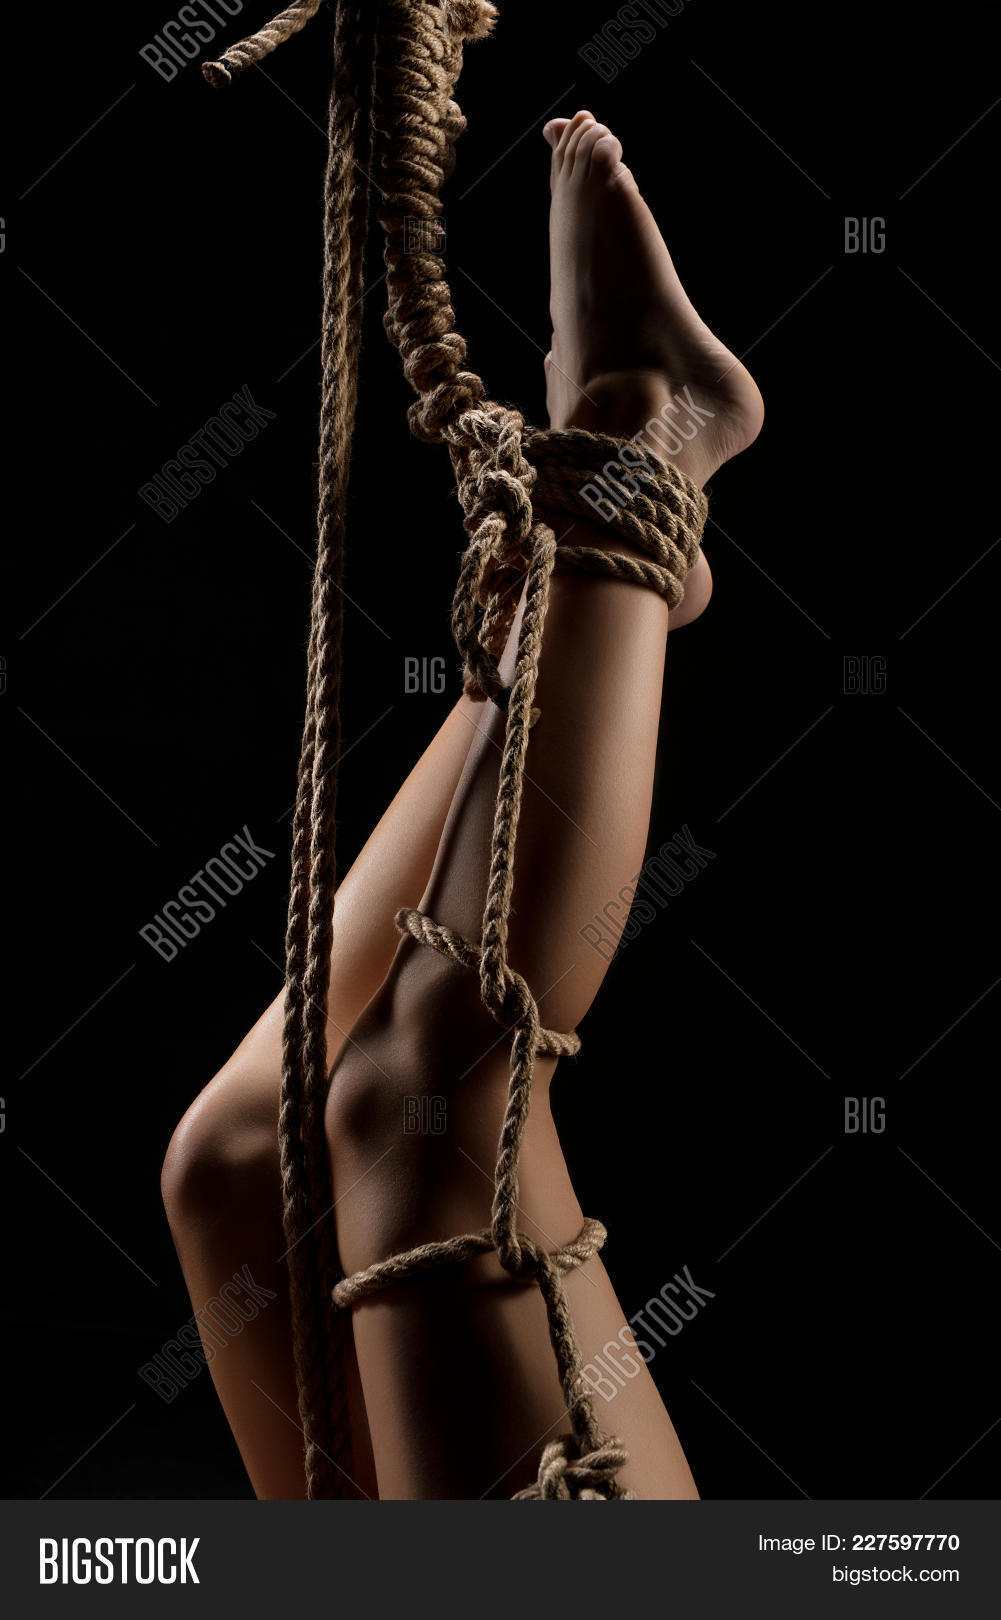 Pictures of black girls tied up naked opinion